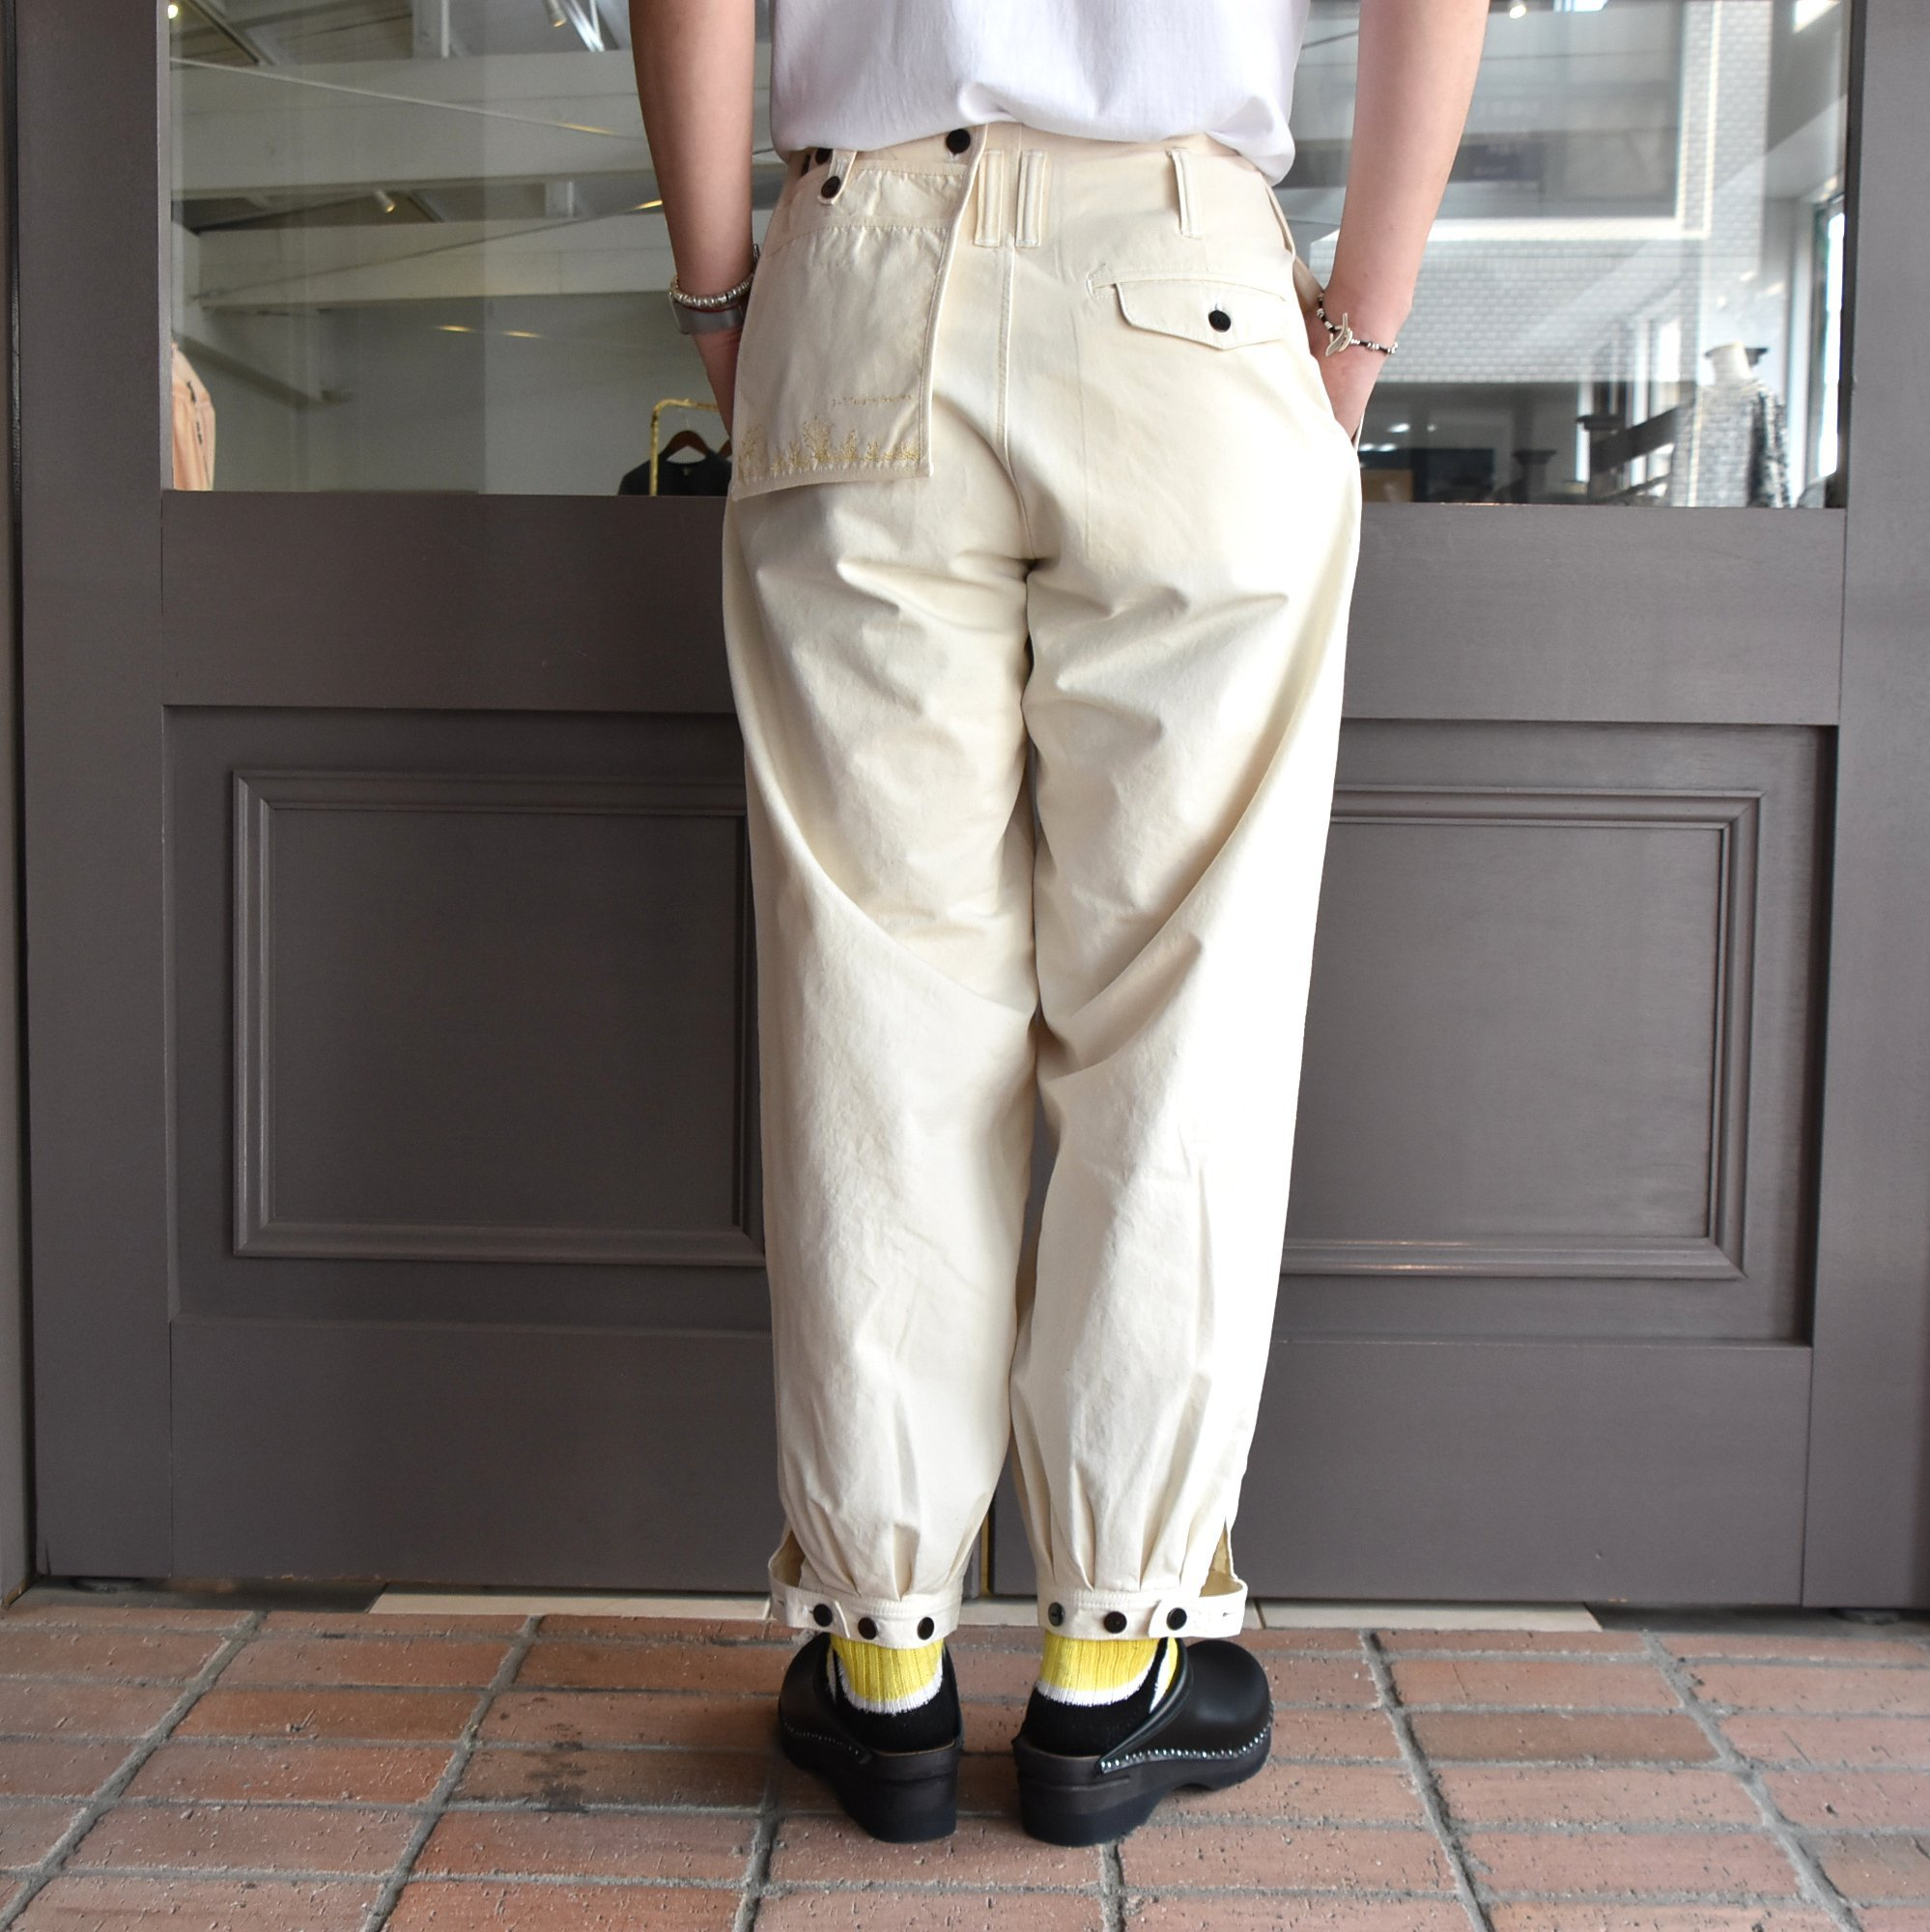 [2021]amachi.(アマチ) DetachablePocket Work Pants-Off White- #AY8-22(7)